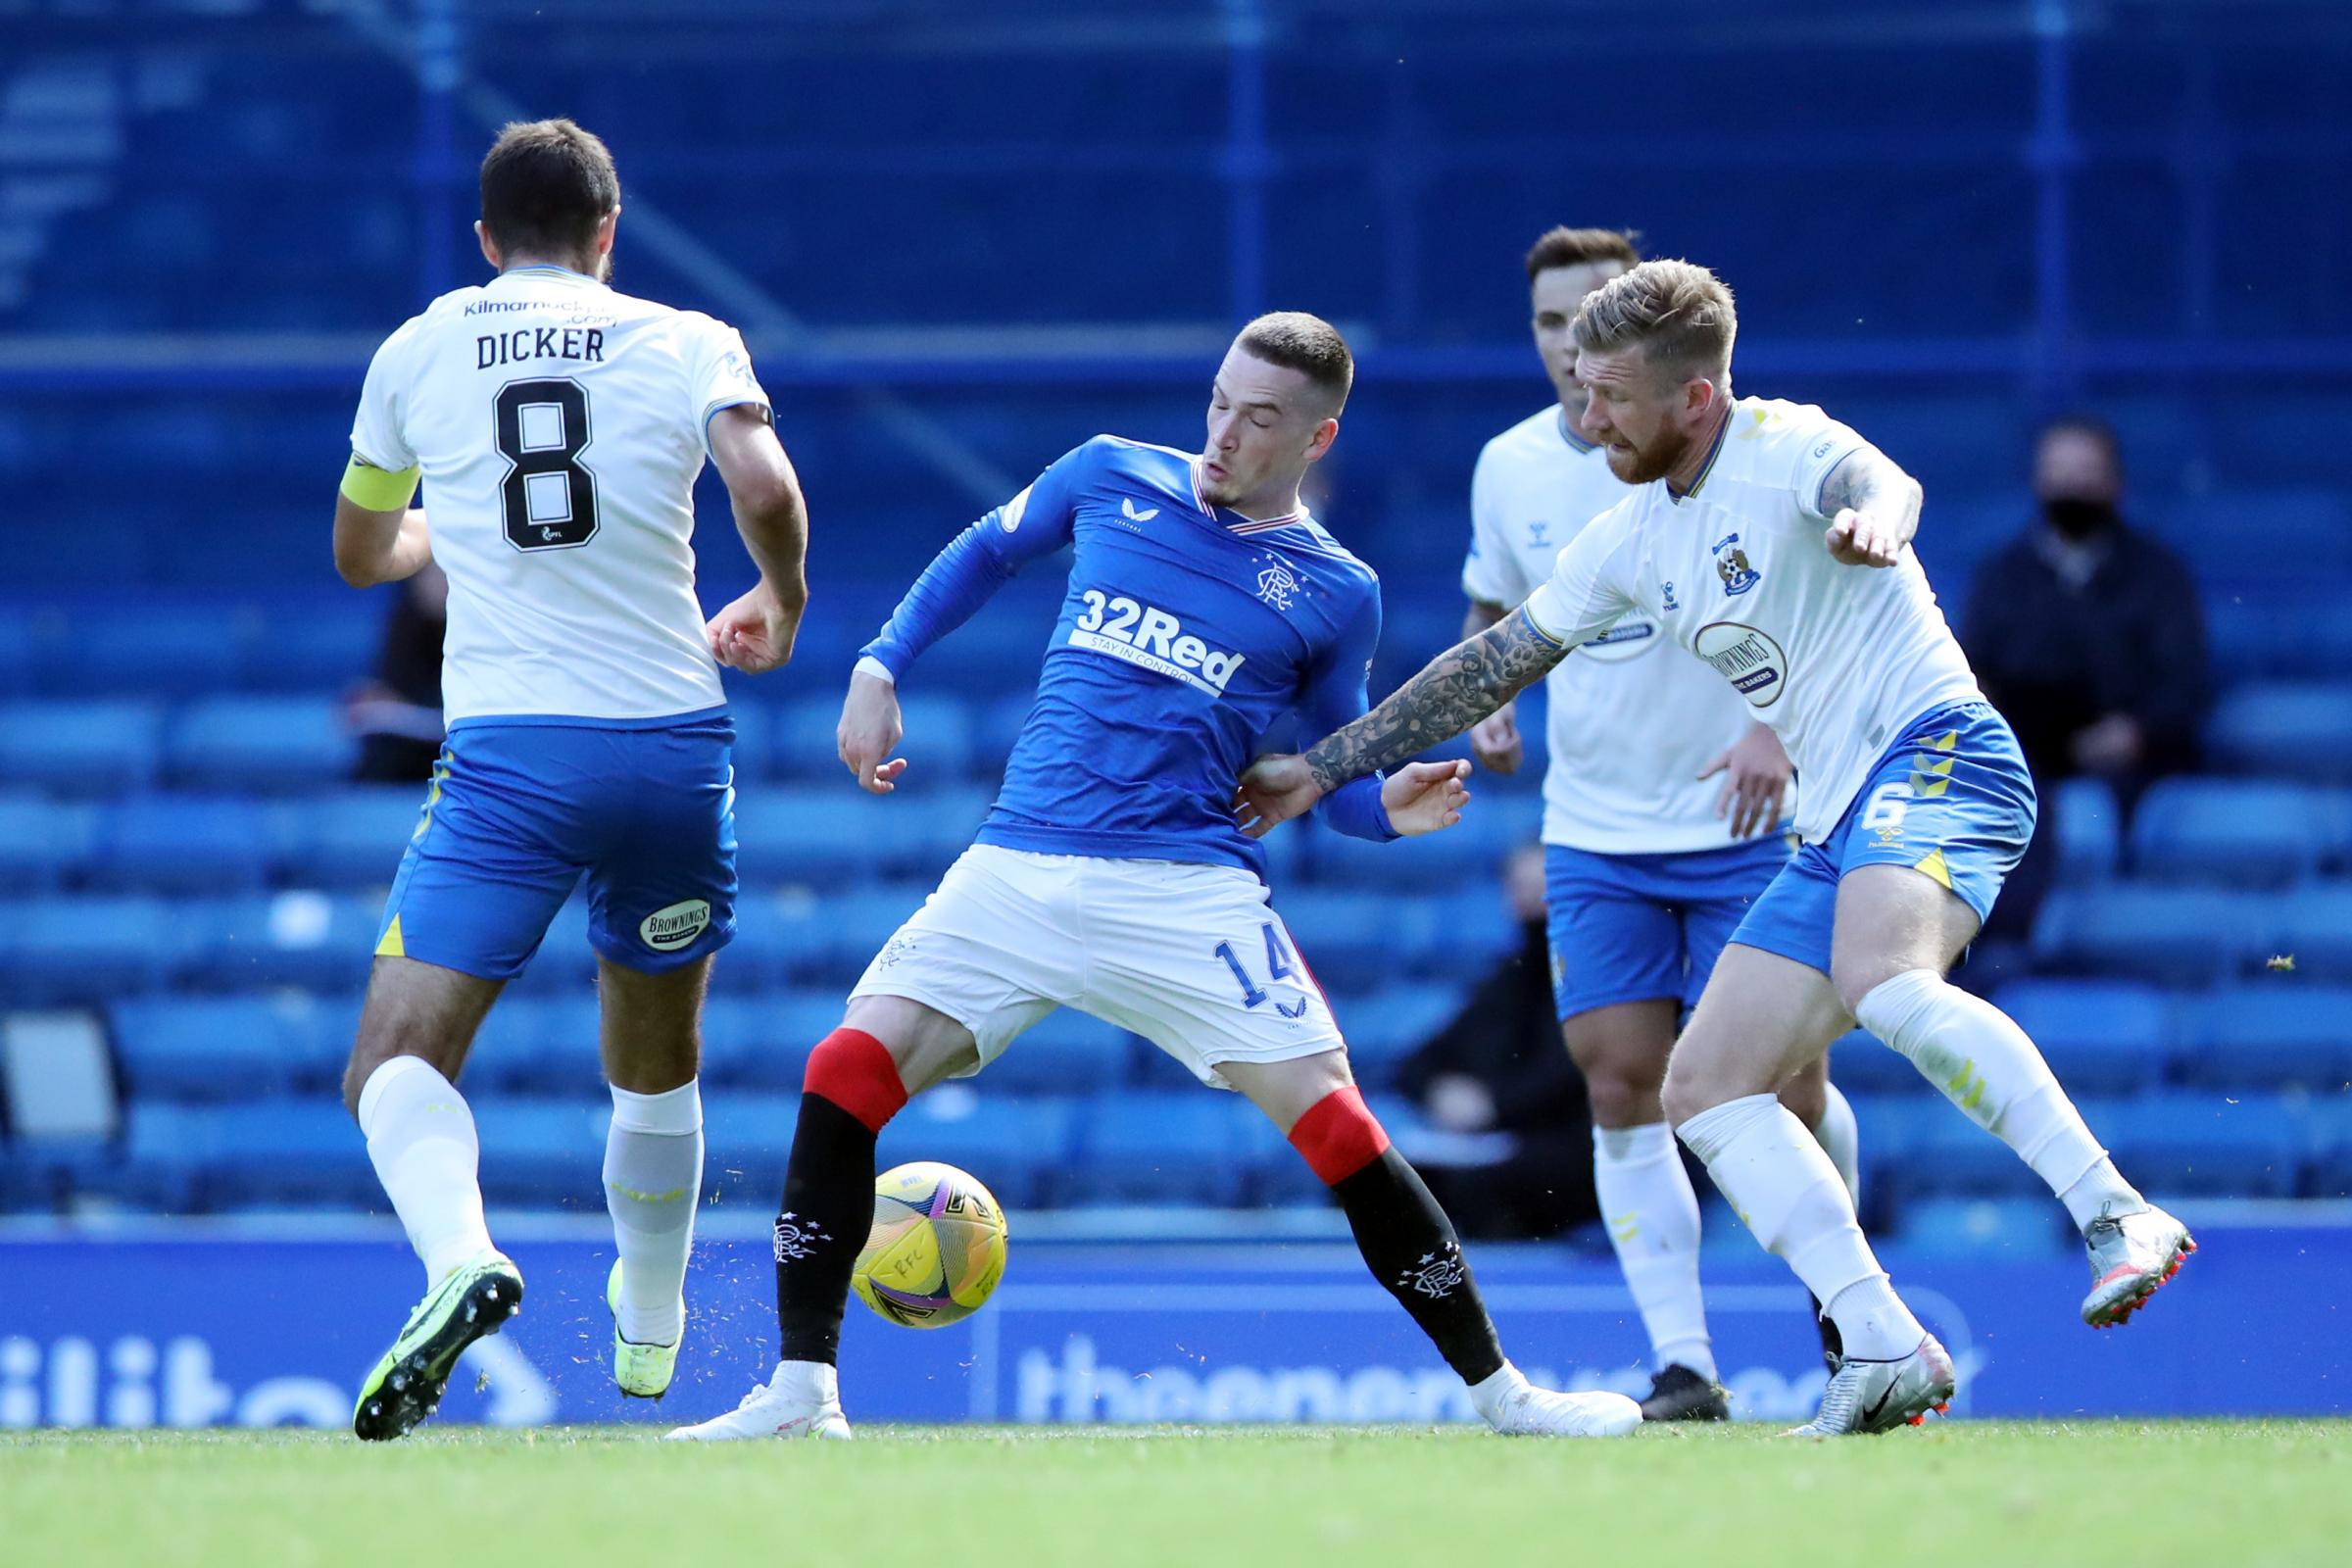 Alex Dyer confident Kilmarnock will pick up points after Ibrox defeat to Rangers